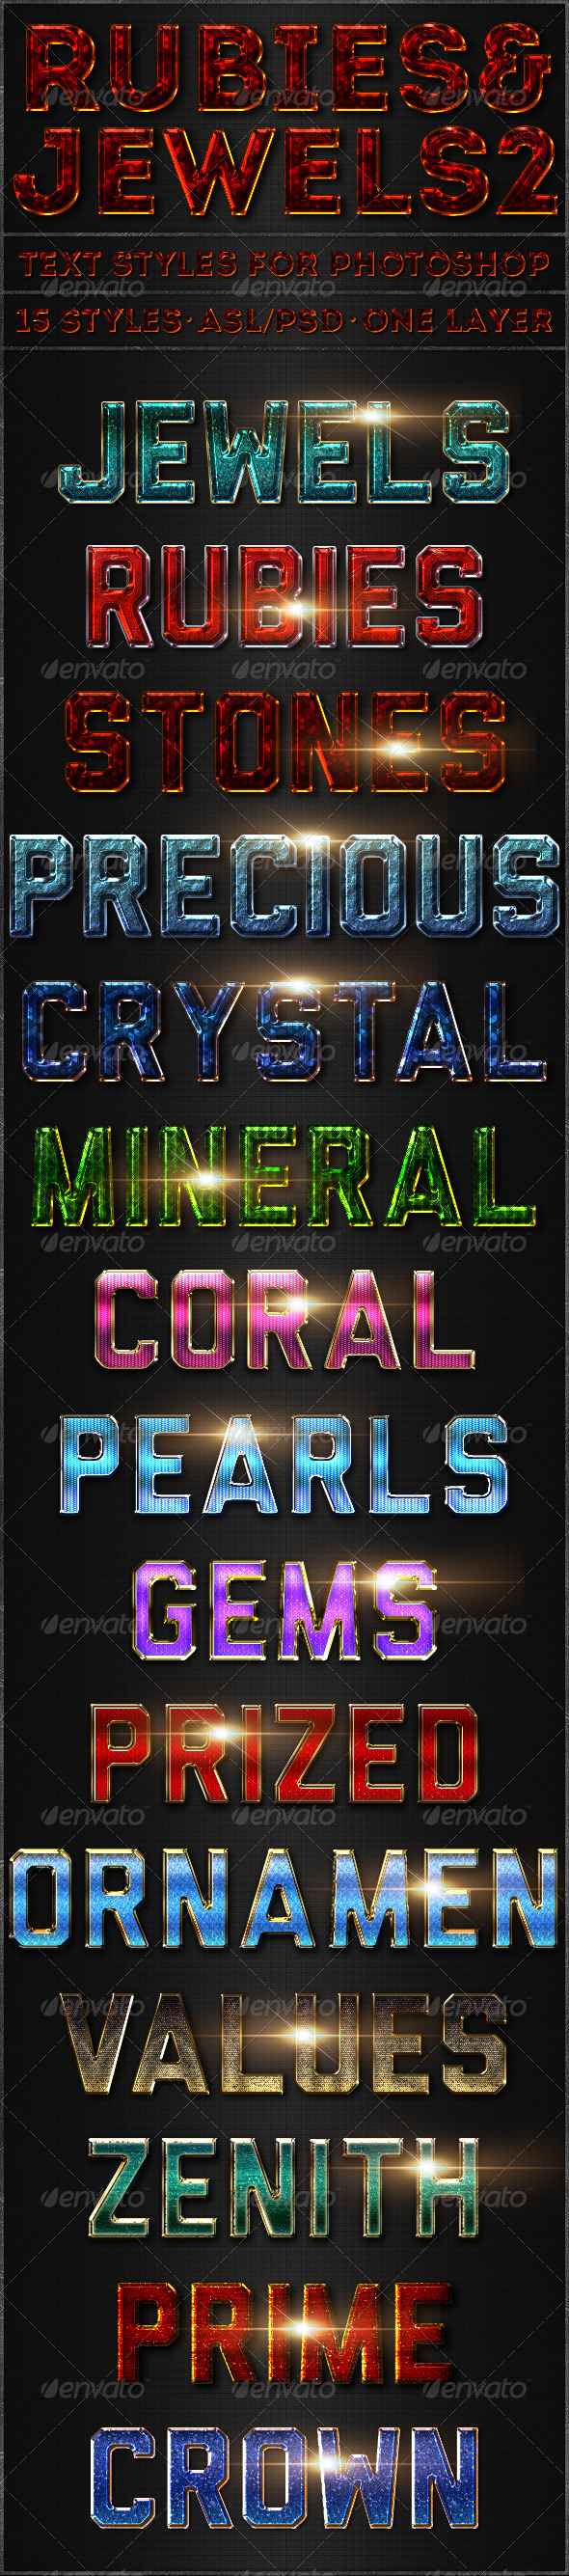 GraphicRiver Rubies & Jewels 2 Text Styles 5352217